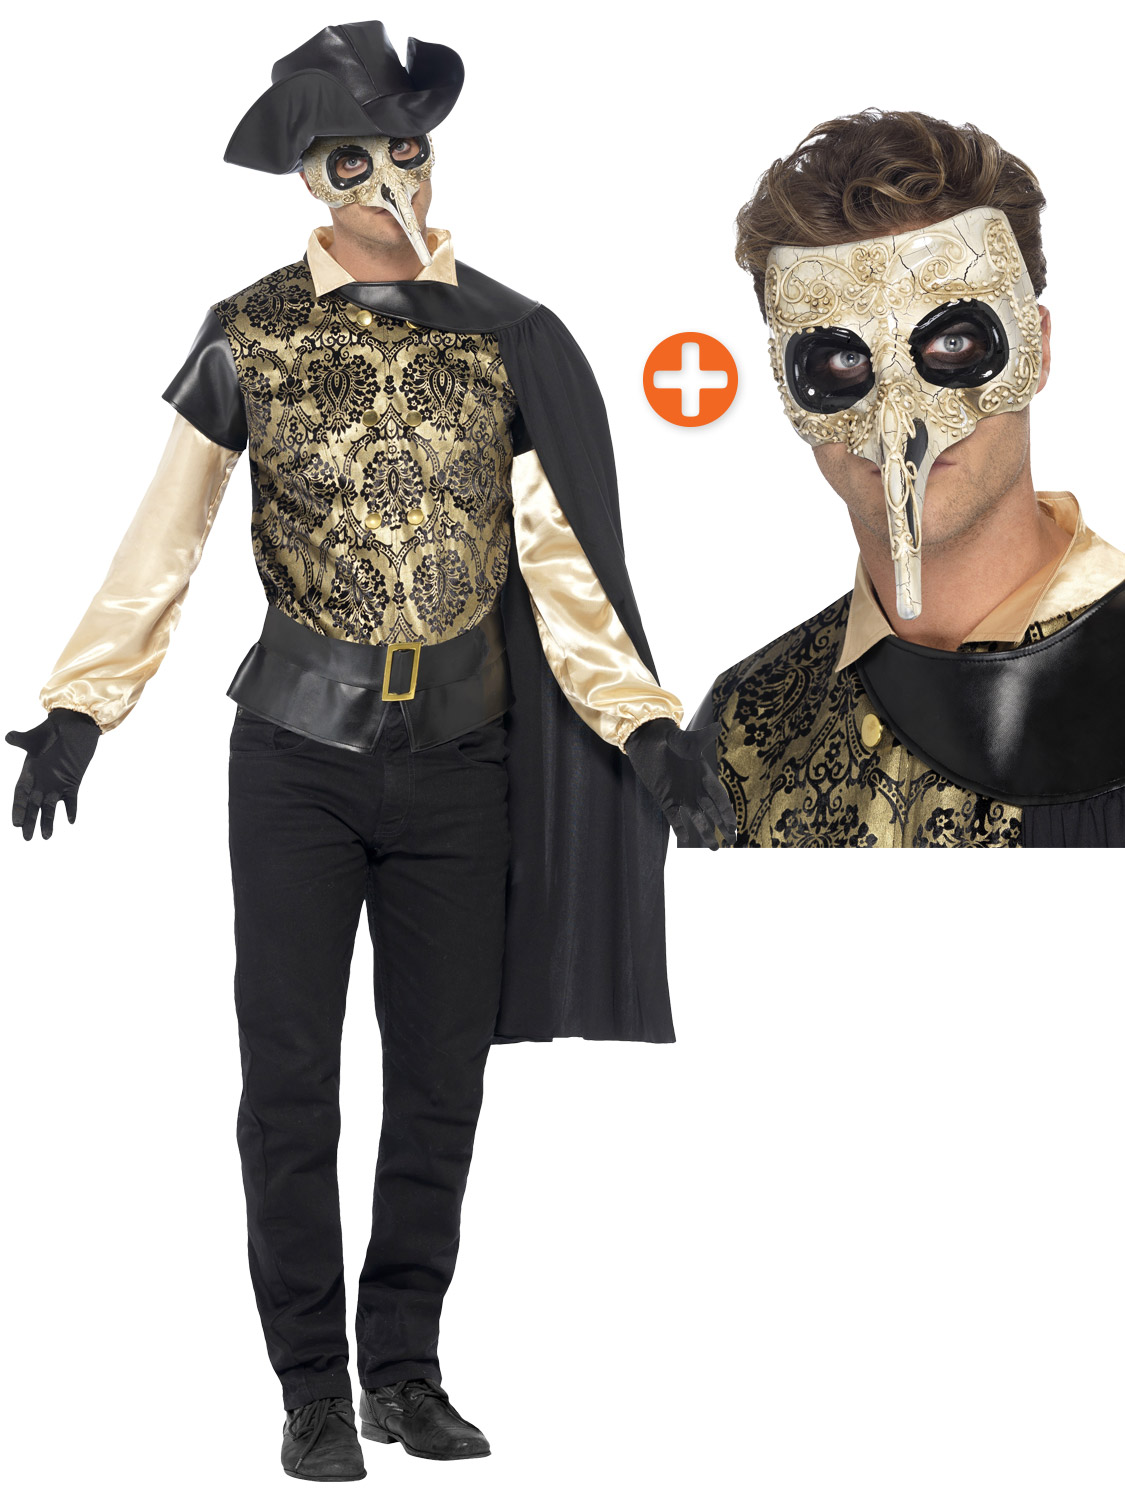 Costumes for Men Masquerade Costumes for Men; Filter. Back. Clear Aplpy. Shopping guide. Use the filters and leave it to us to find the perfect item for you. Clear all Skull Vest Set Adult Costume is a perfect choice for giving others a shock at a masquerade or cosutme party. Costume Details: This horror style costume set consists from a.